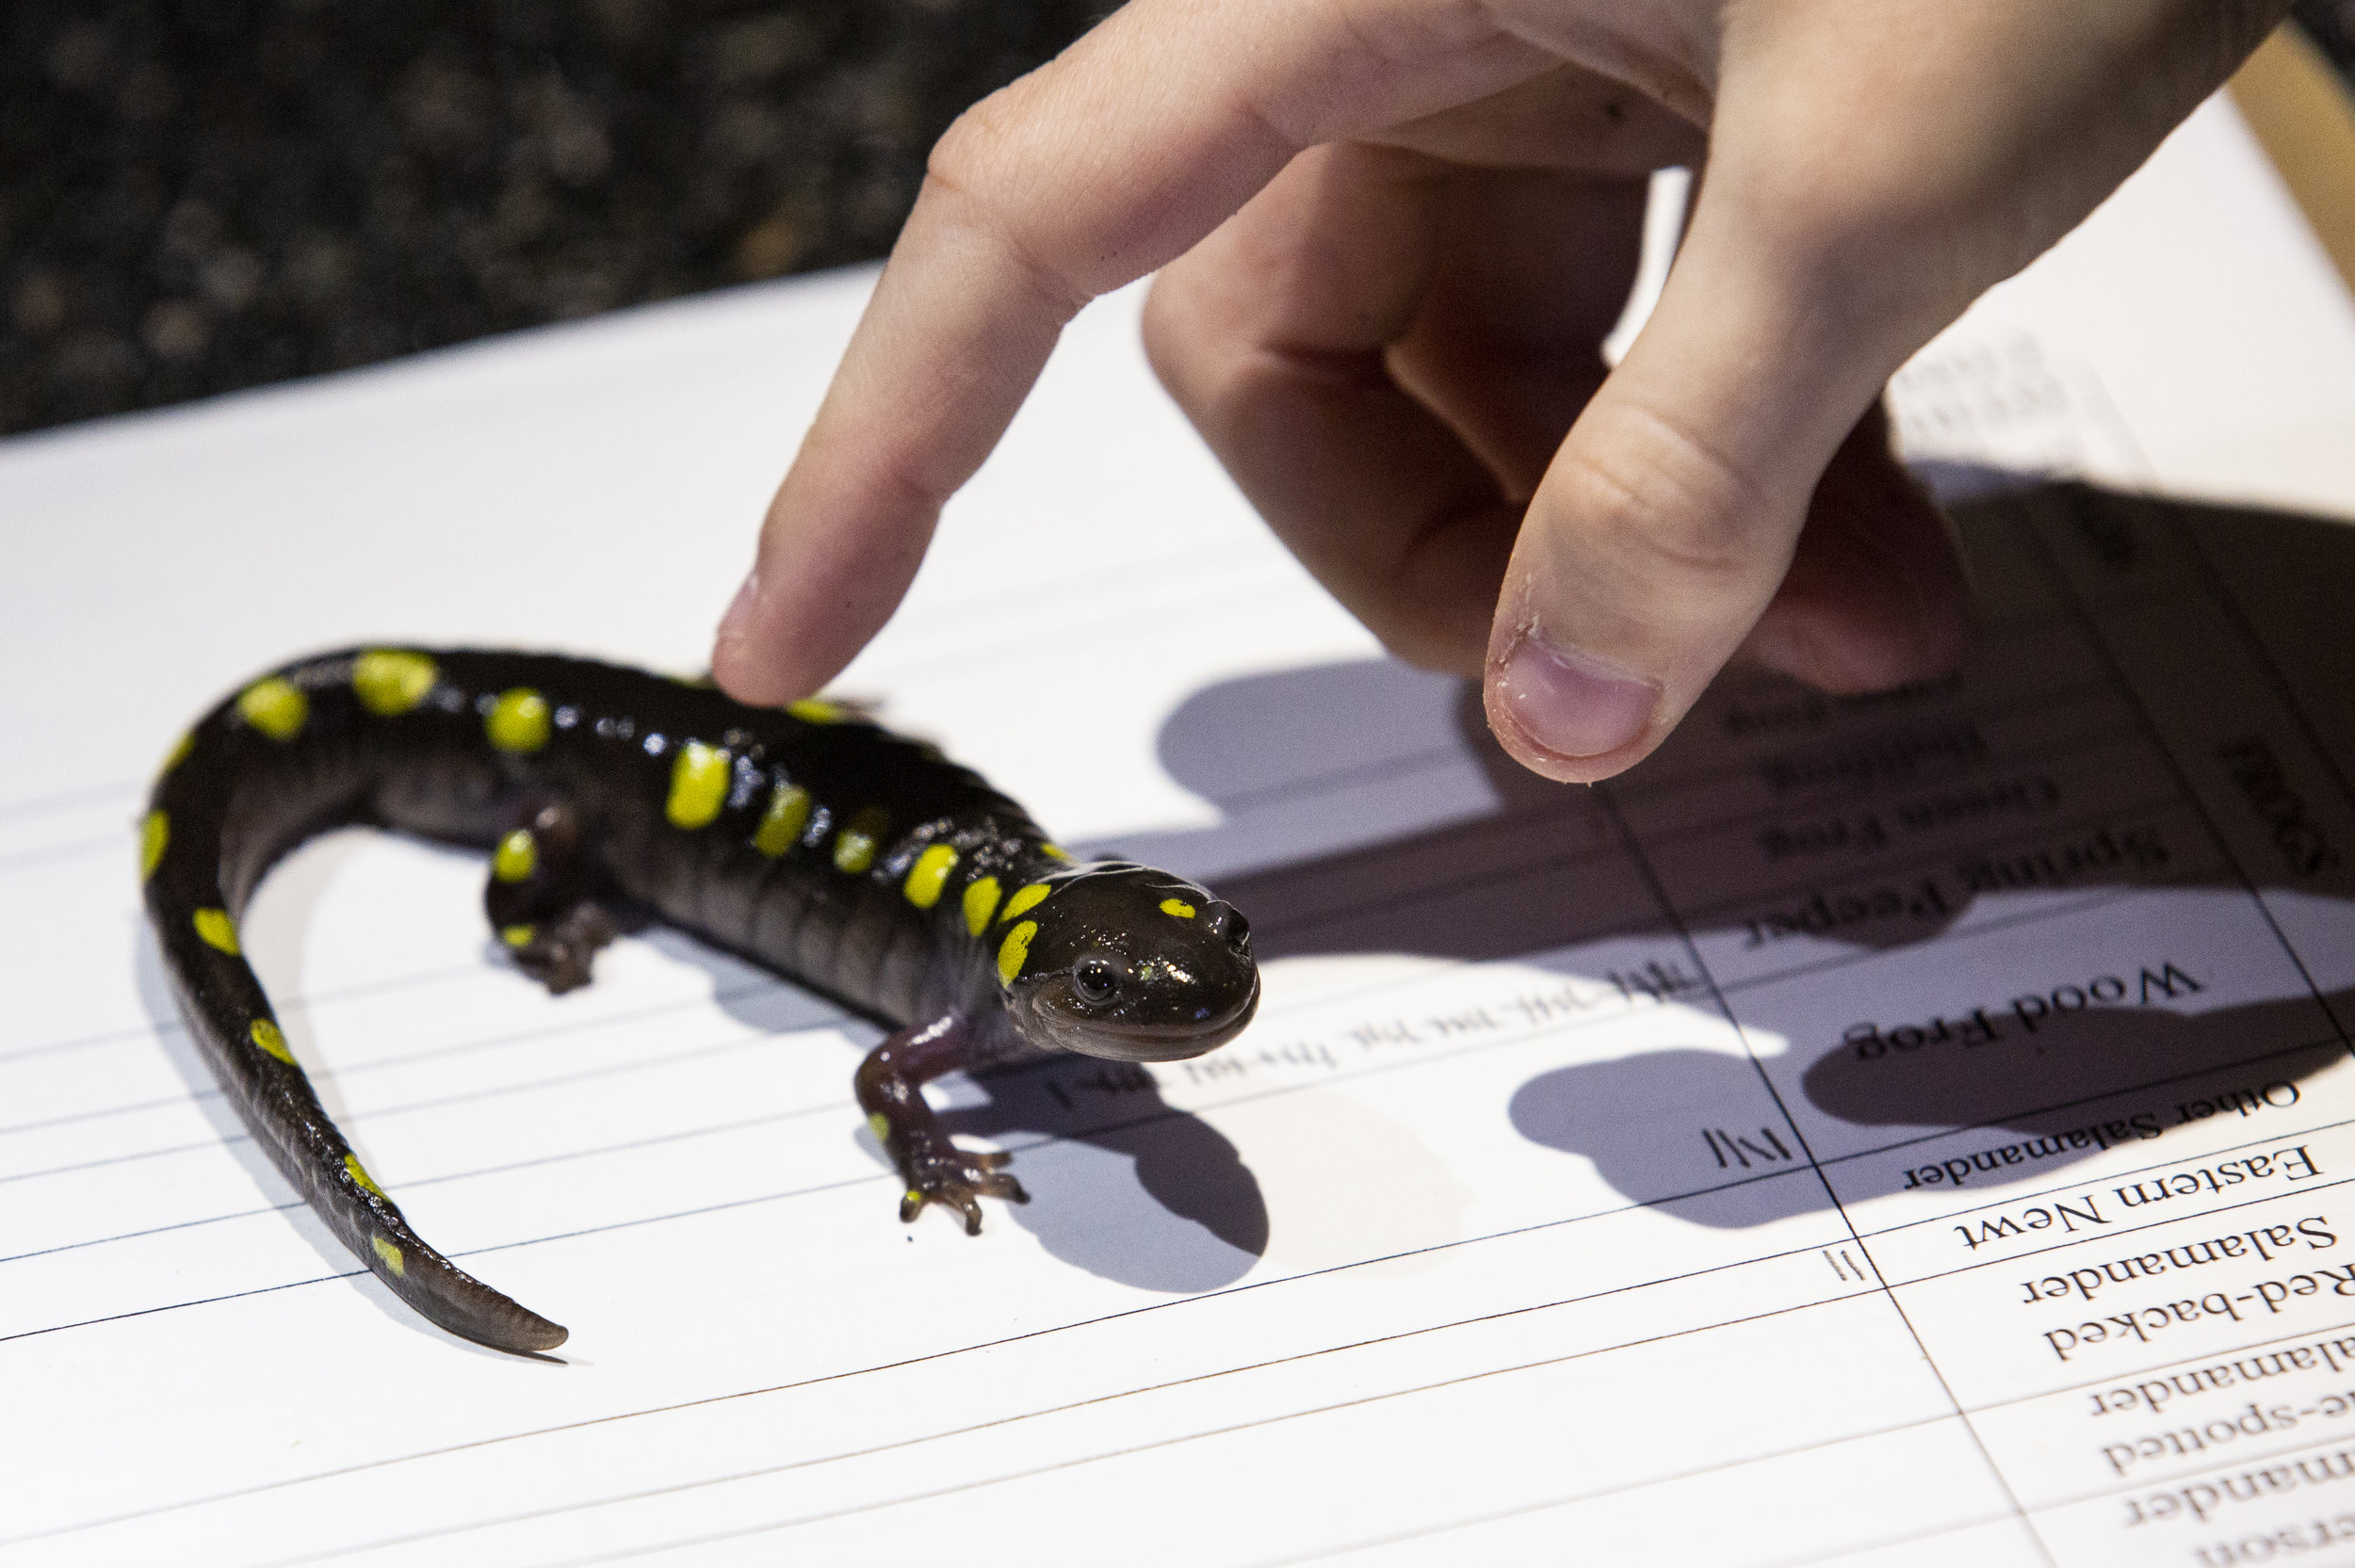 A spotted salamander is transported to a volunteer's clipboard, where it will be photographed and then quickly released back to the woods. Spotted salamanders have two distinct rows of yellow dots that are as unique and individualistic as a human's fingerprints. These unique patterns help volunteers to identify and keep track of individuals as they return year after year to the same breeding sites over their 30-year lifespan. (Anna Miller/Animalia Podcast)